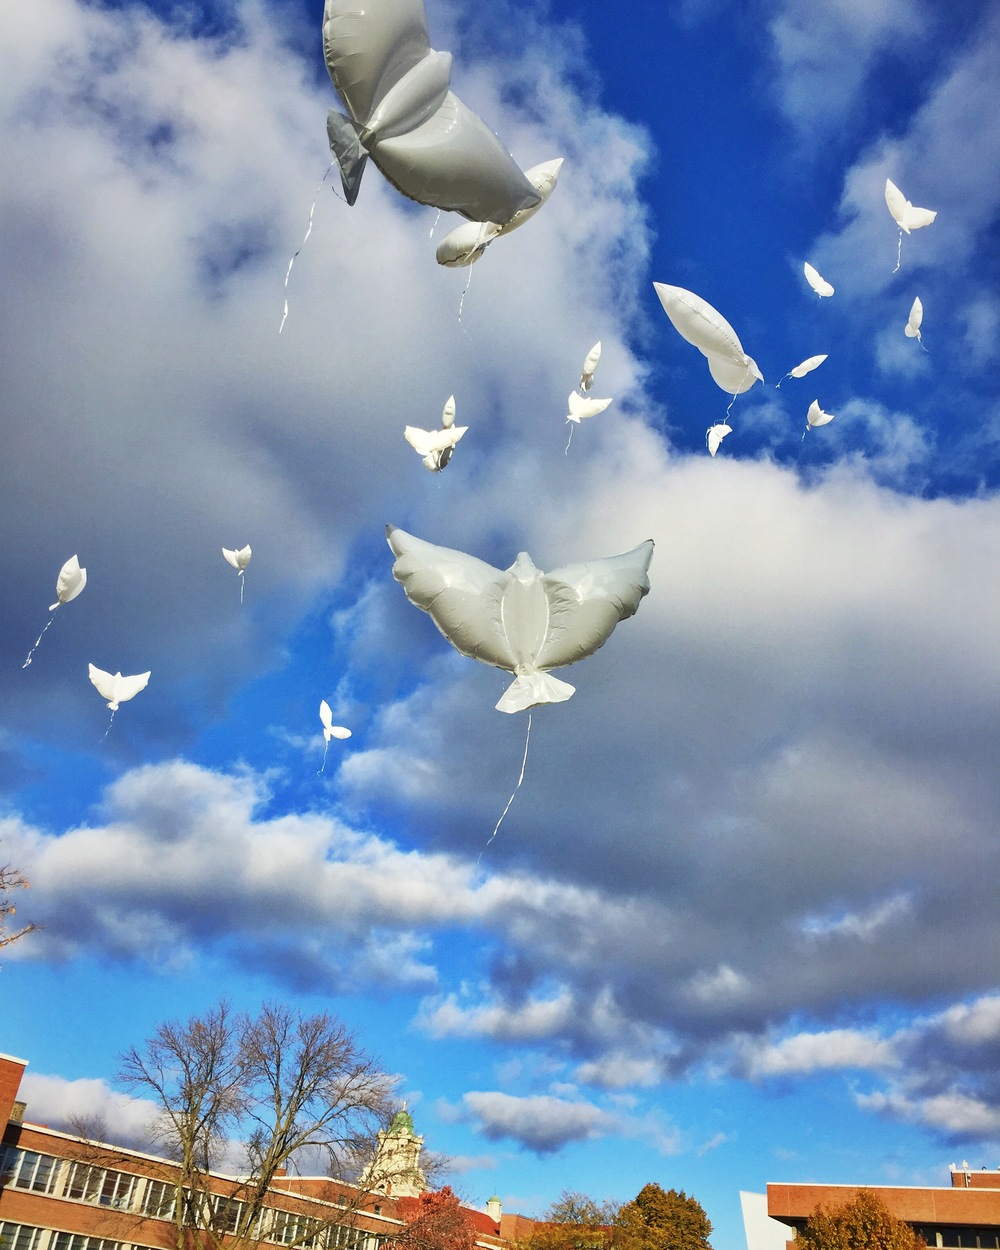 35 Dove balloons are released during the 2015 Remembrance Week in Syracuse